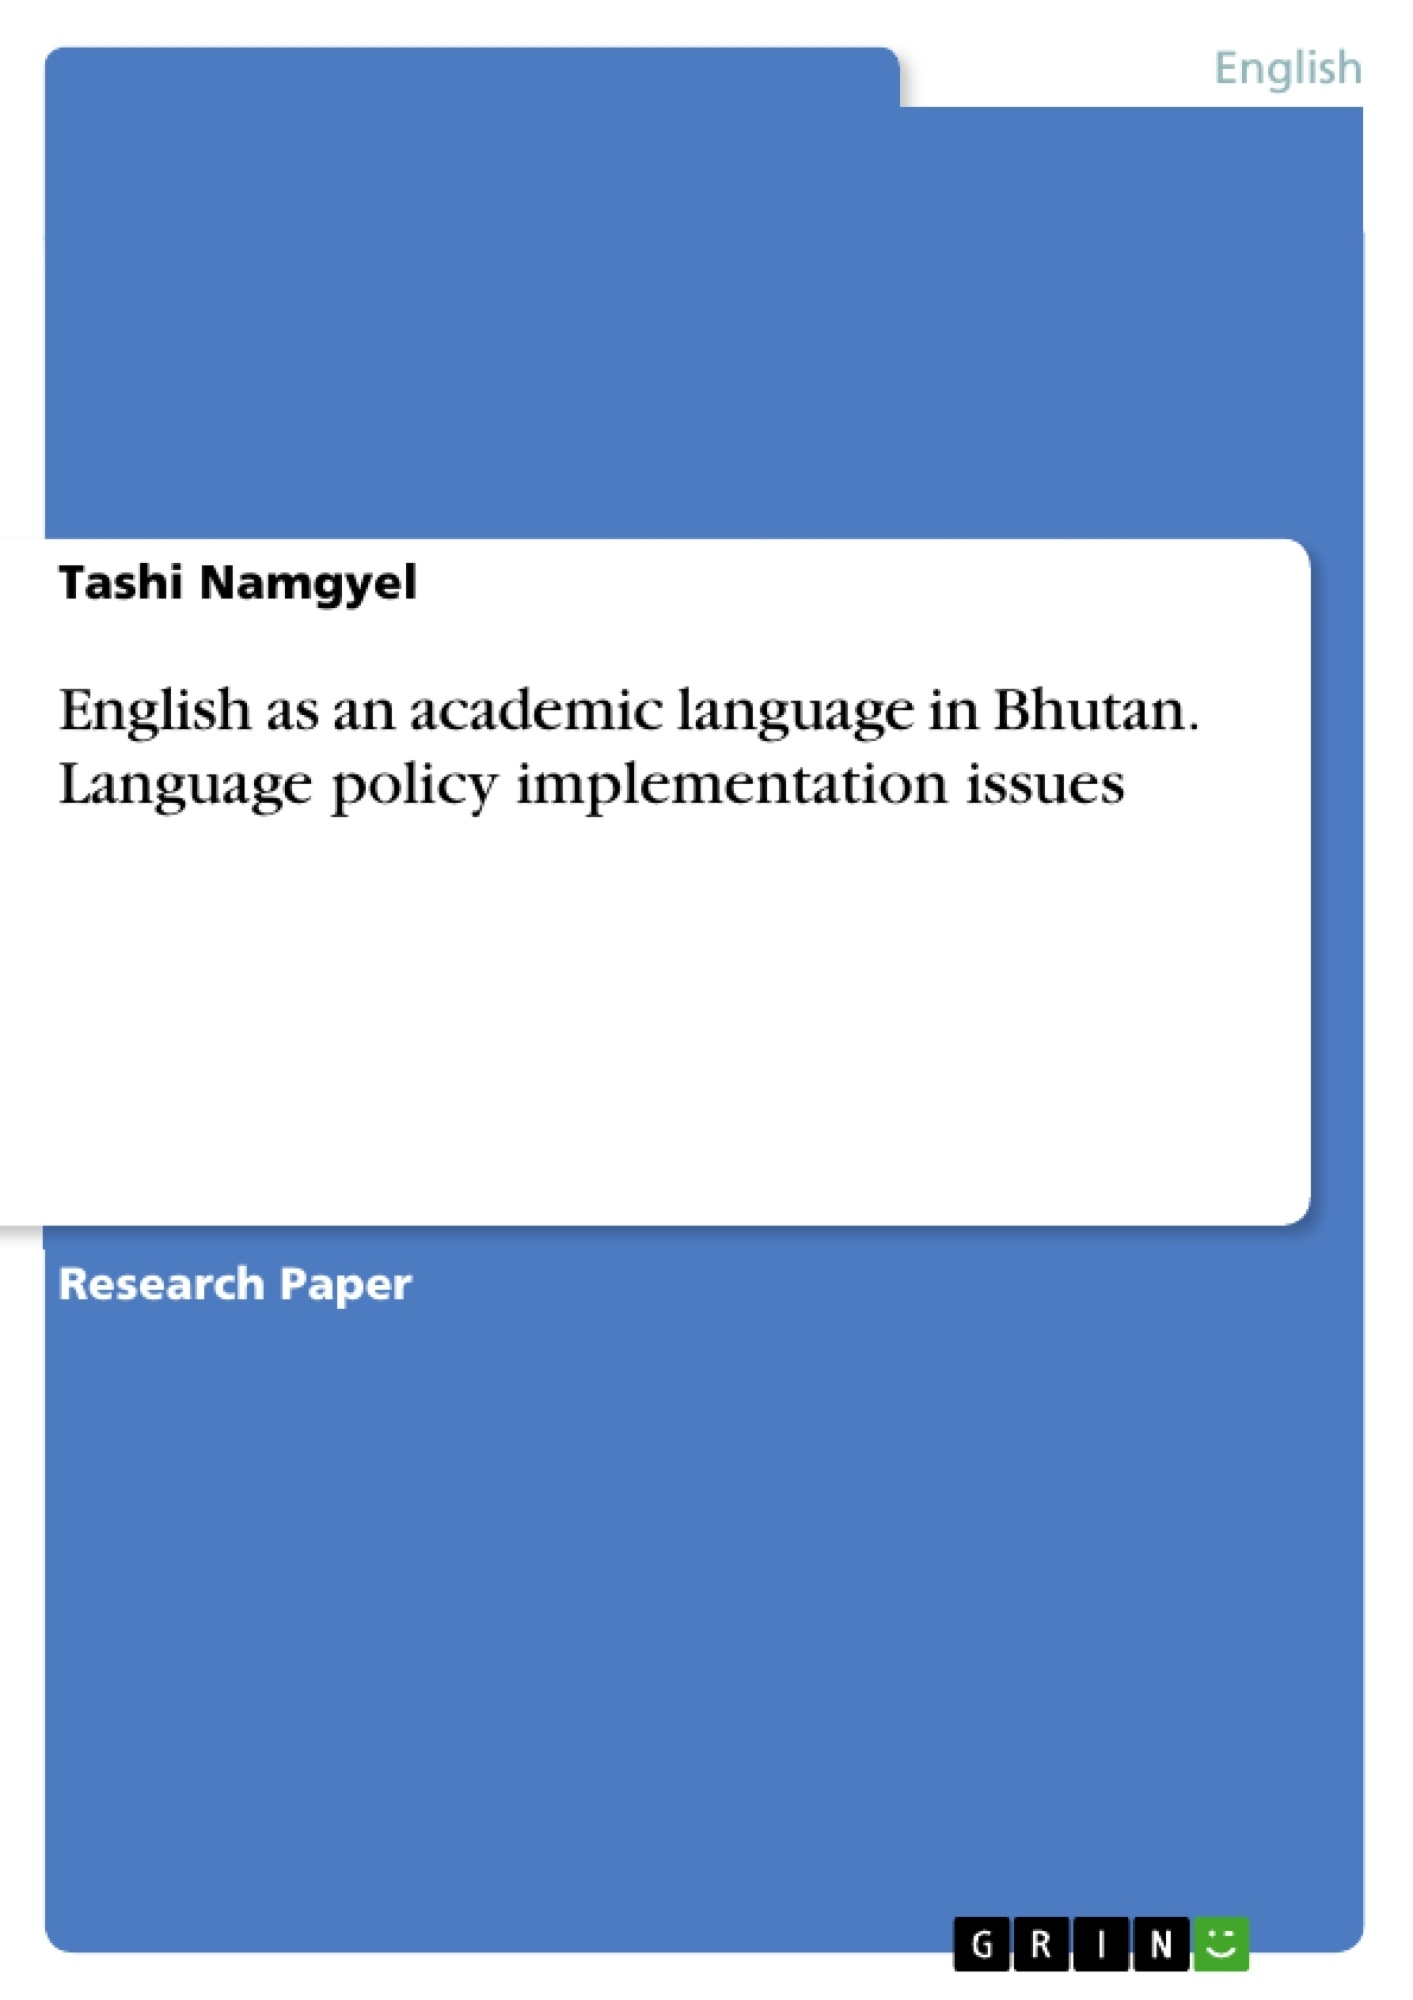 Title: English as an academic language in Bhutan. Language policy implementation issues